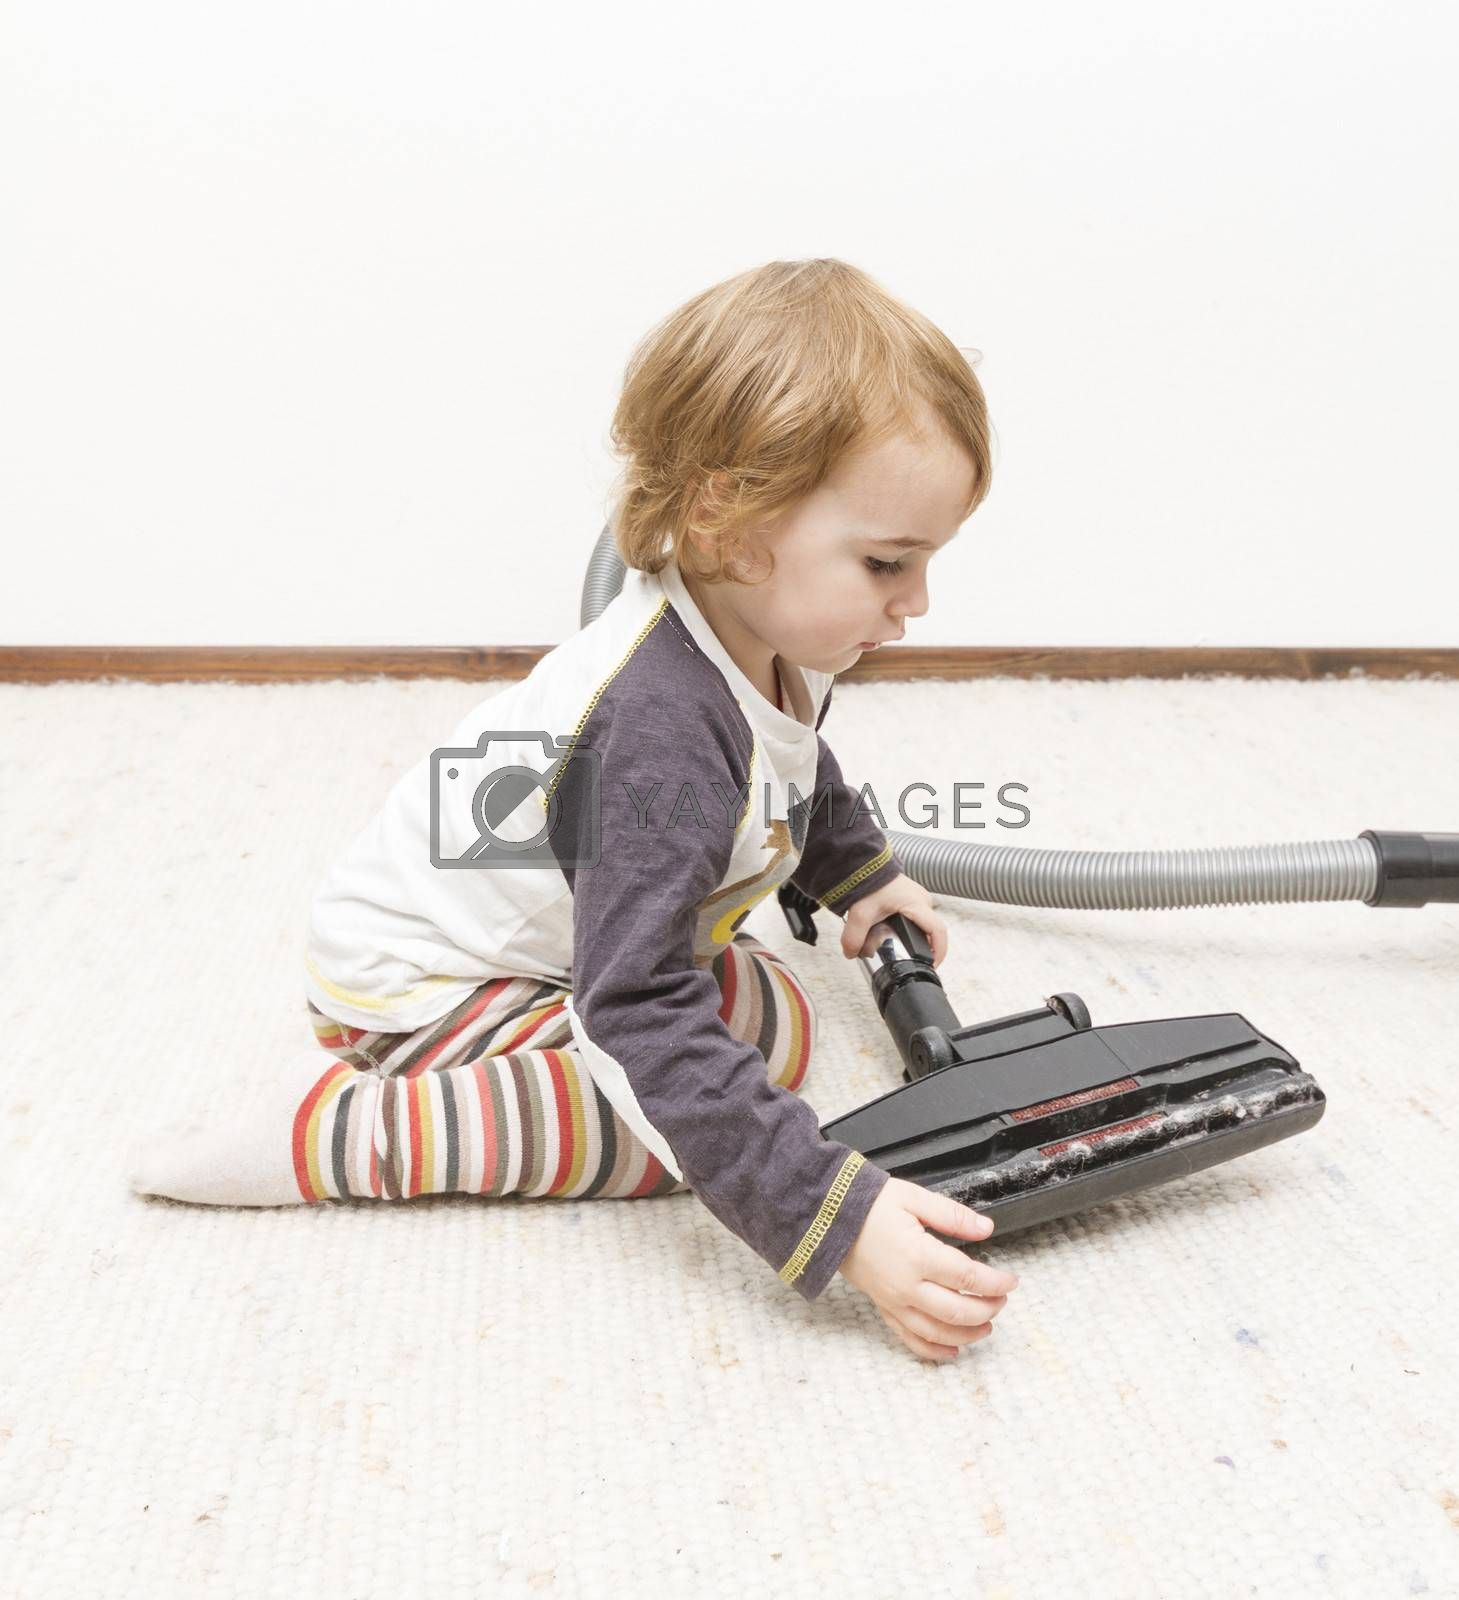 Royalty free image of young child cleaning vacuum cleaner by gewoldi